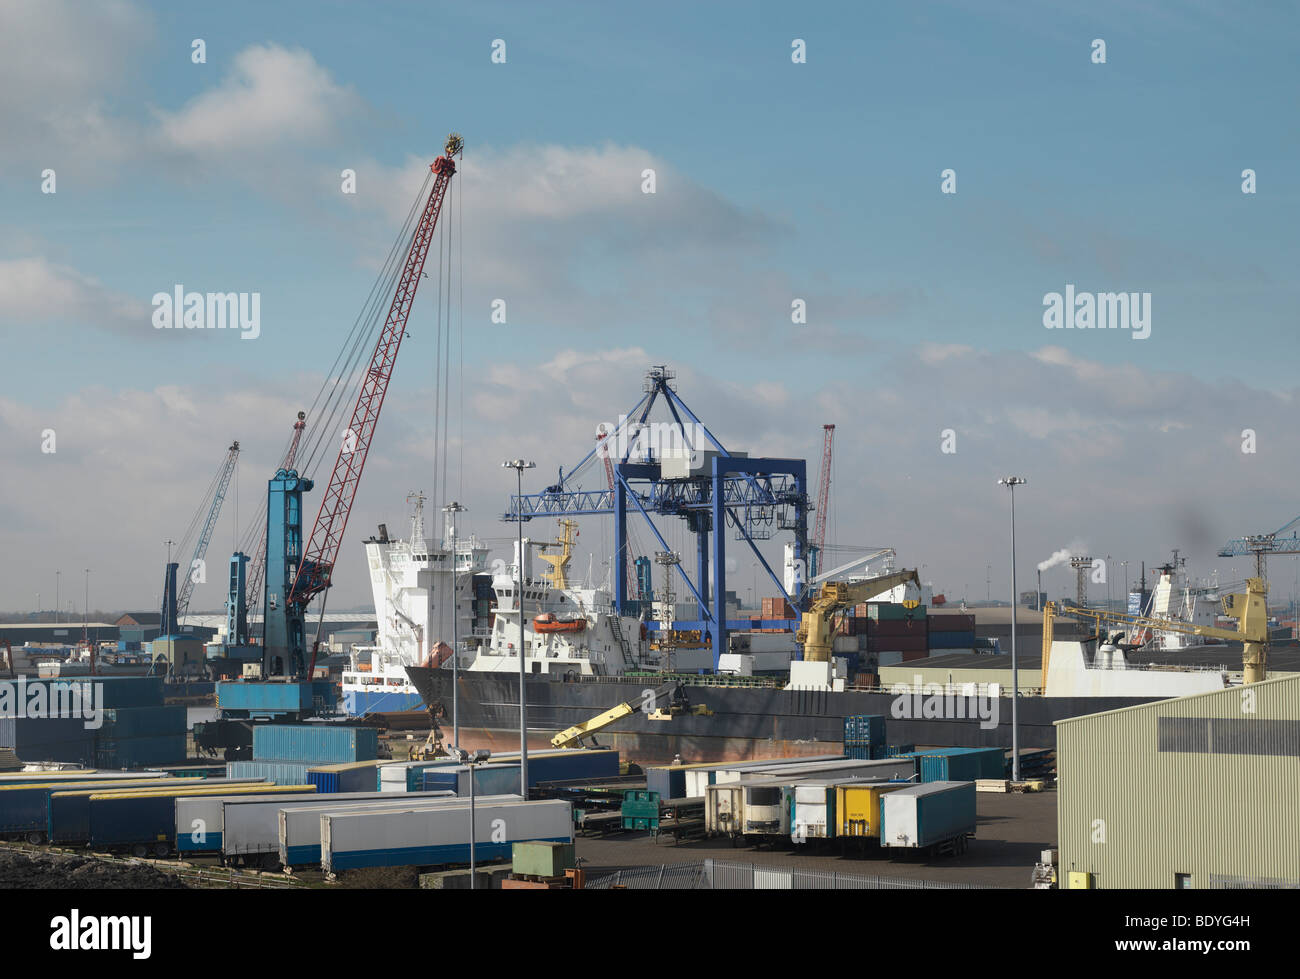 Ship Being Loaded At A Port Stock Photo